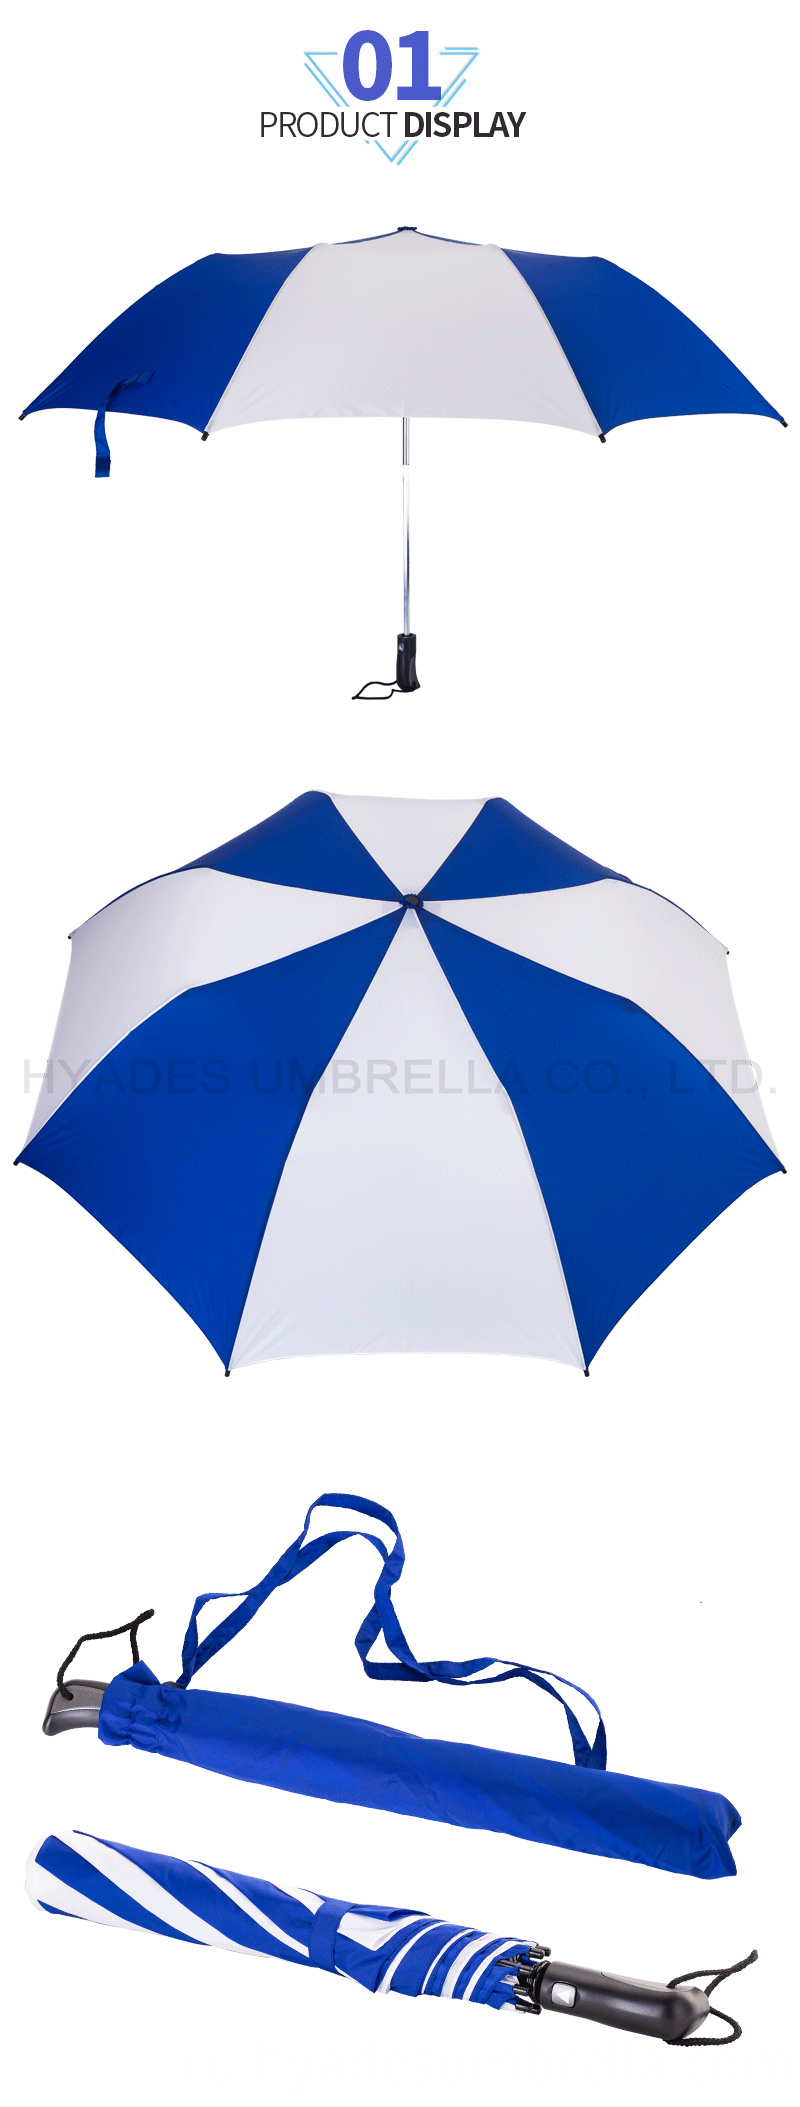 2 Folding Umbrella Windproof Fiberglass Frame